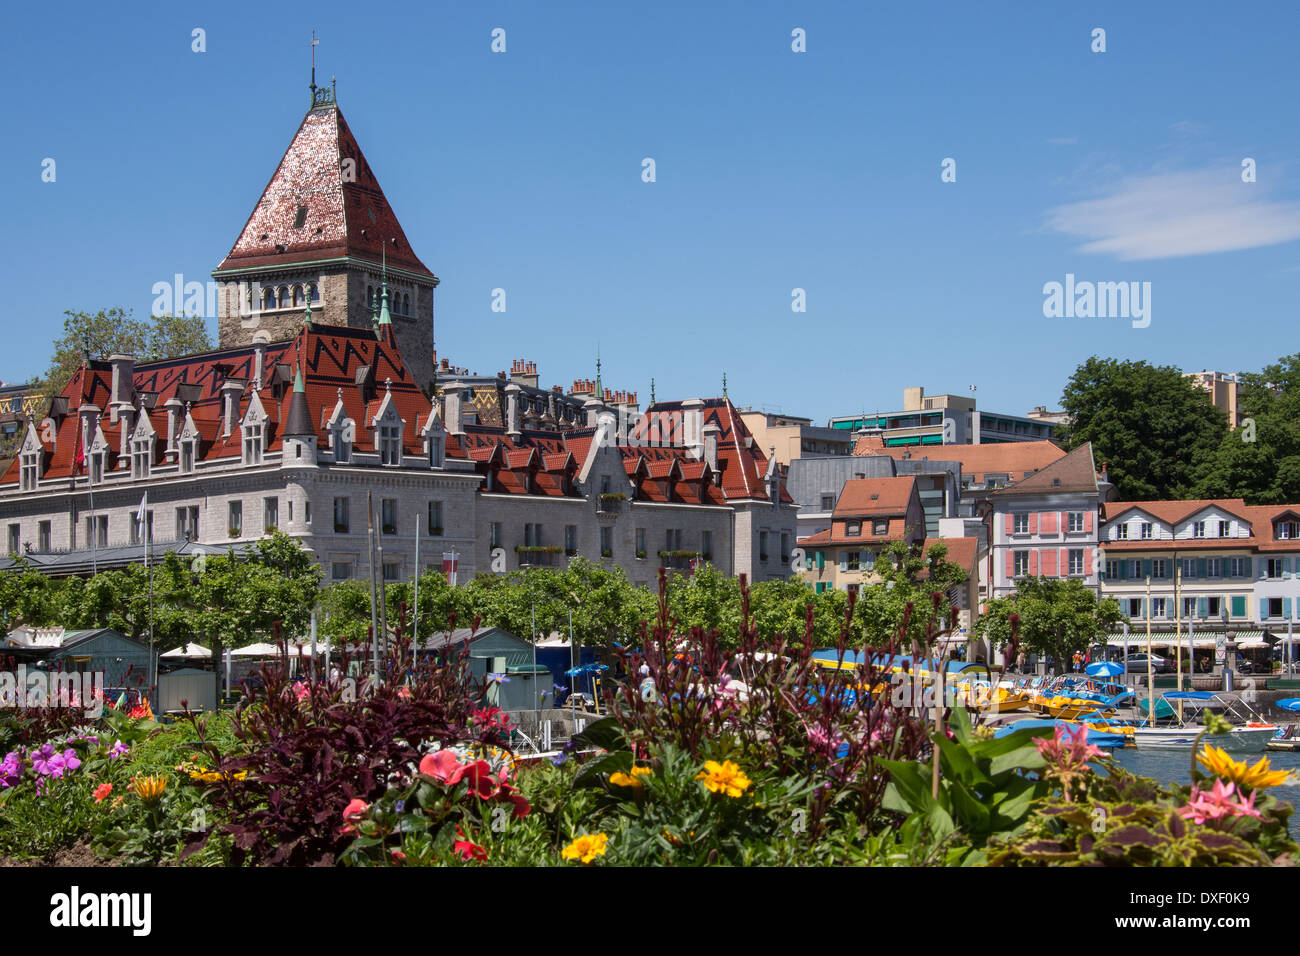 Chateau d'Ouchy and the waterfront in the town of Ouchy on the north shore of Lake Geneva in Switzerland. - Stock Image